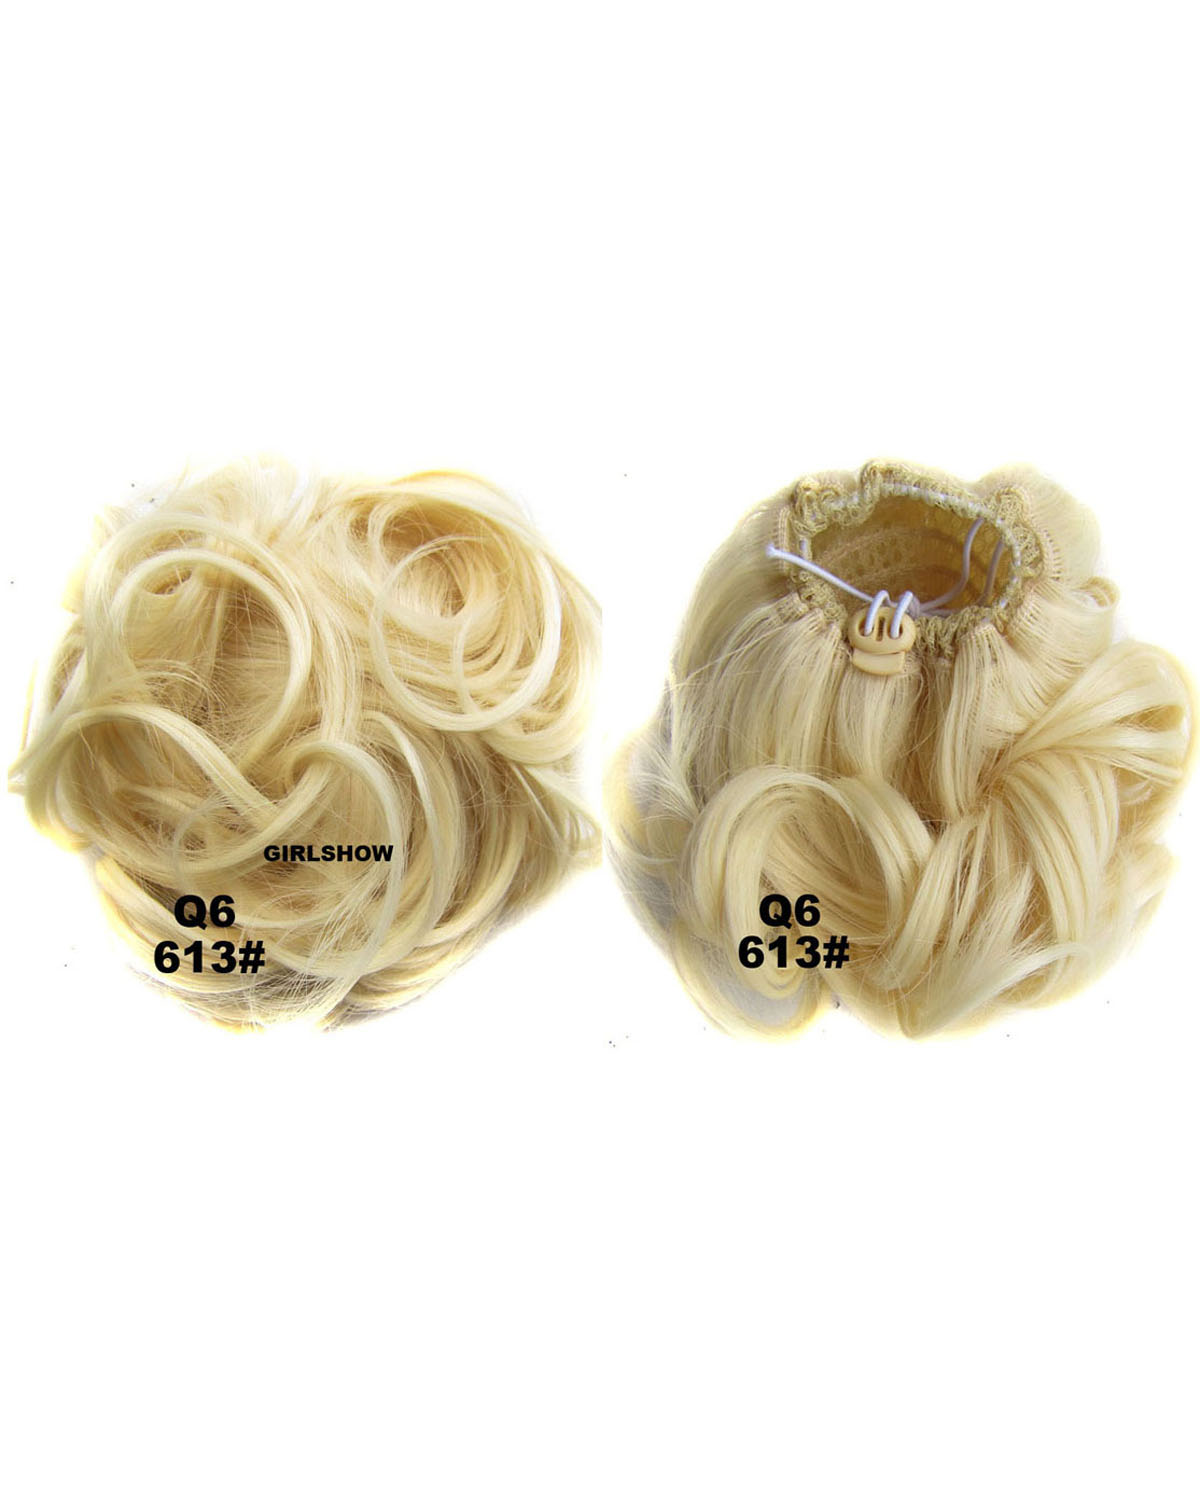 Ladies Delica Curly and Short Hair Buns Drawstring Synthetic Hair Extension Bride Scrunchies 613#